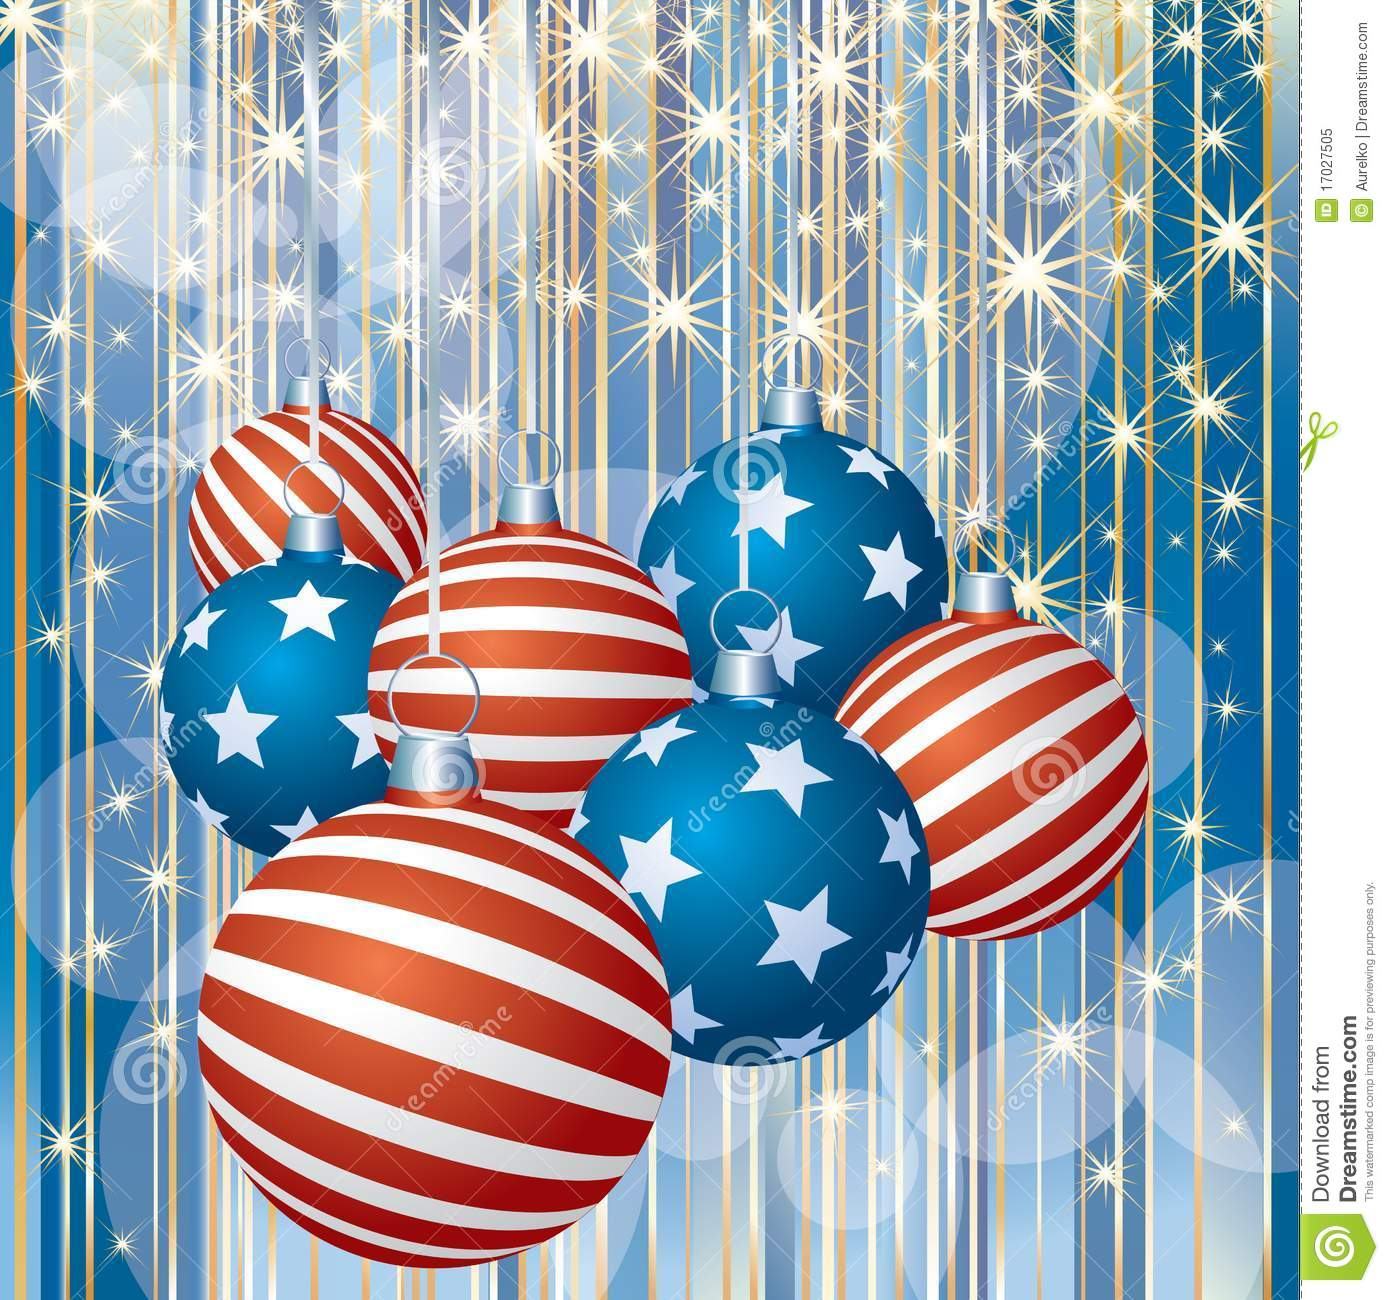 Patriotic Christmas Background.Patriotic Stripped Christmas Stock Vector Illustration Of